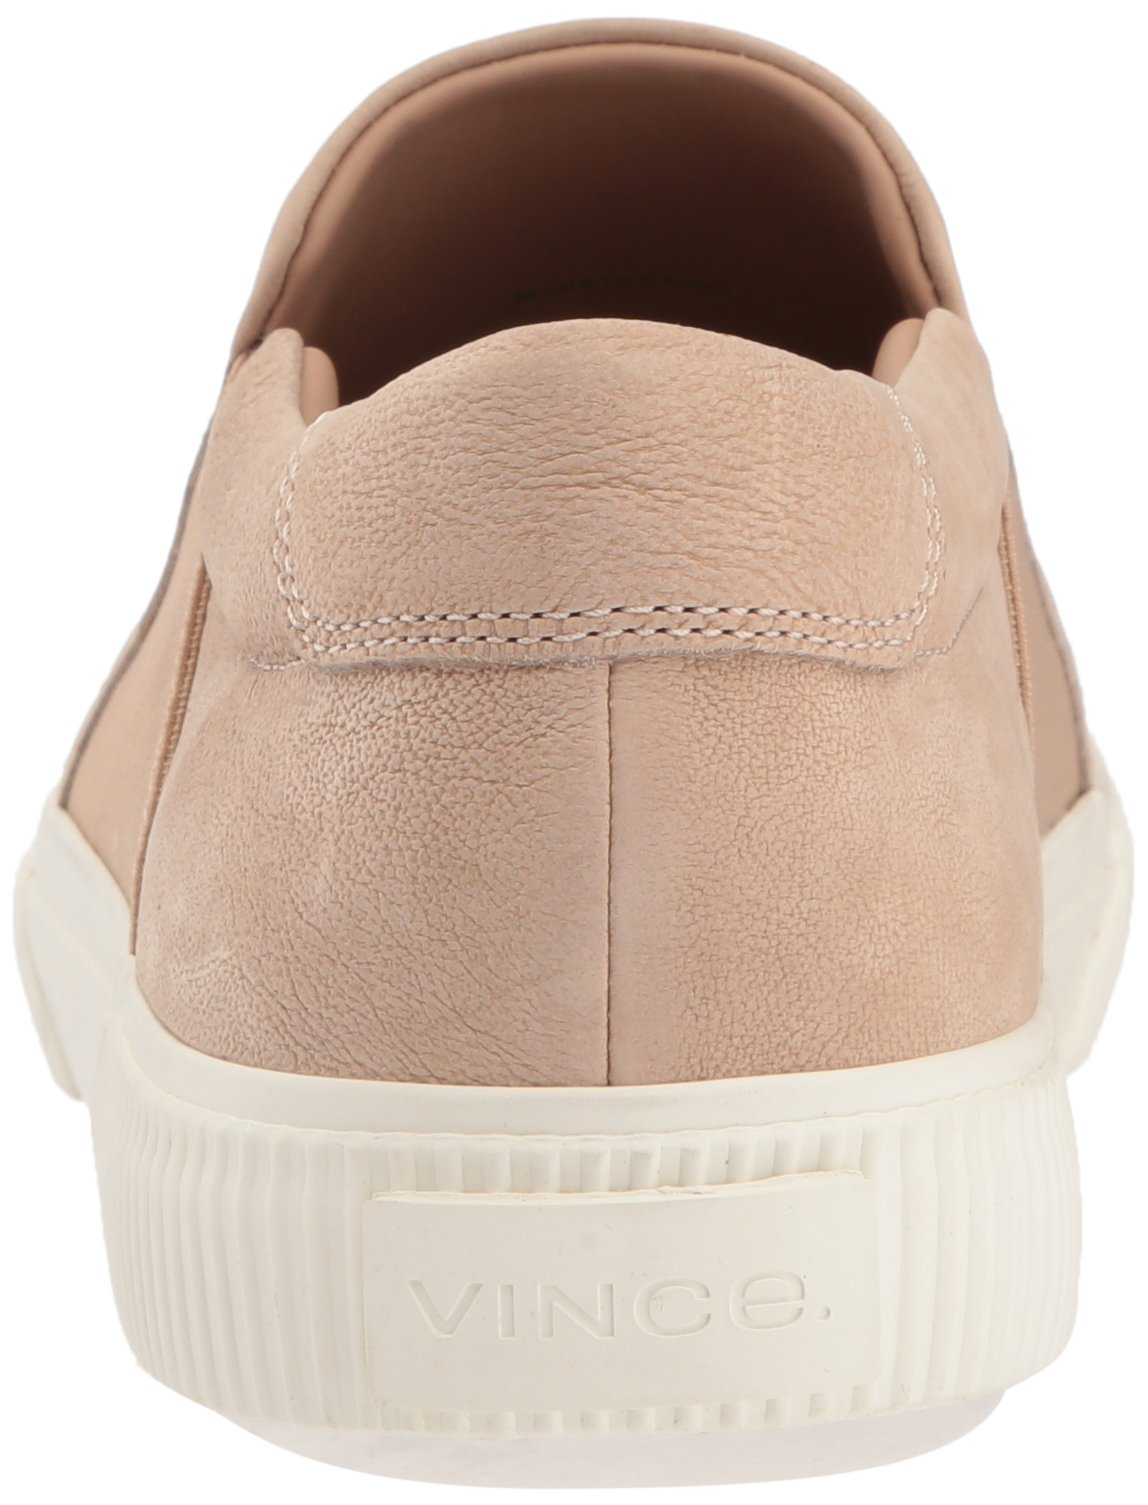 Vince Women's Knox Sneaker, Oatmeal, 6.5 Medium US by Vince (Image #2)